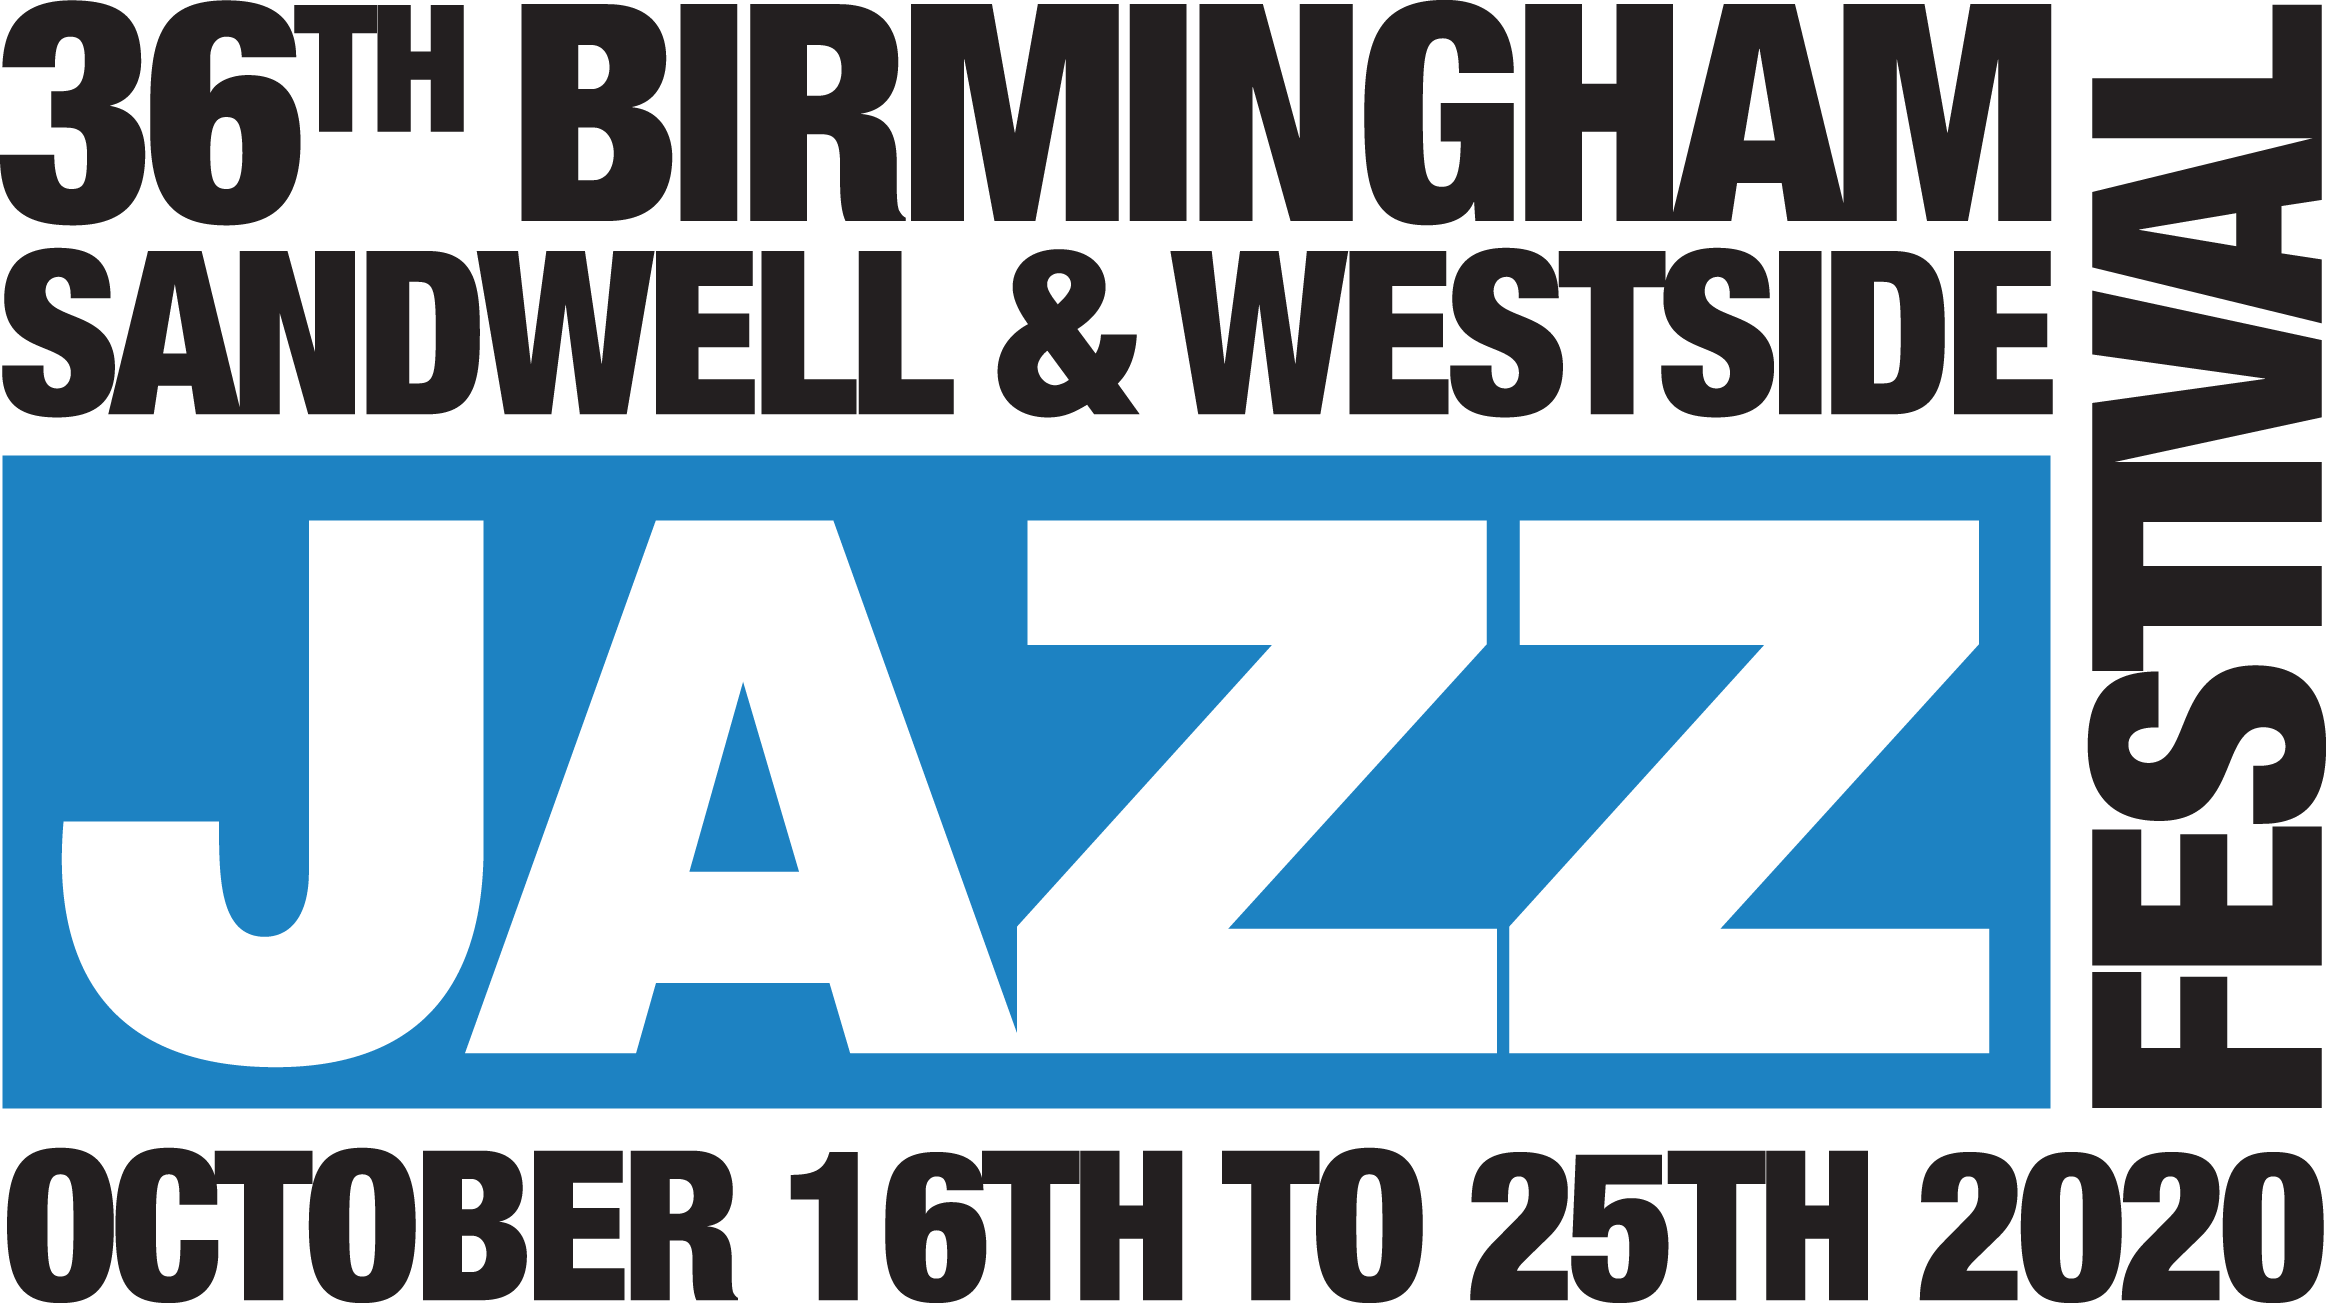 Birmingham, Sandwell and Westside Jazz Festival